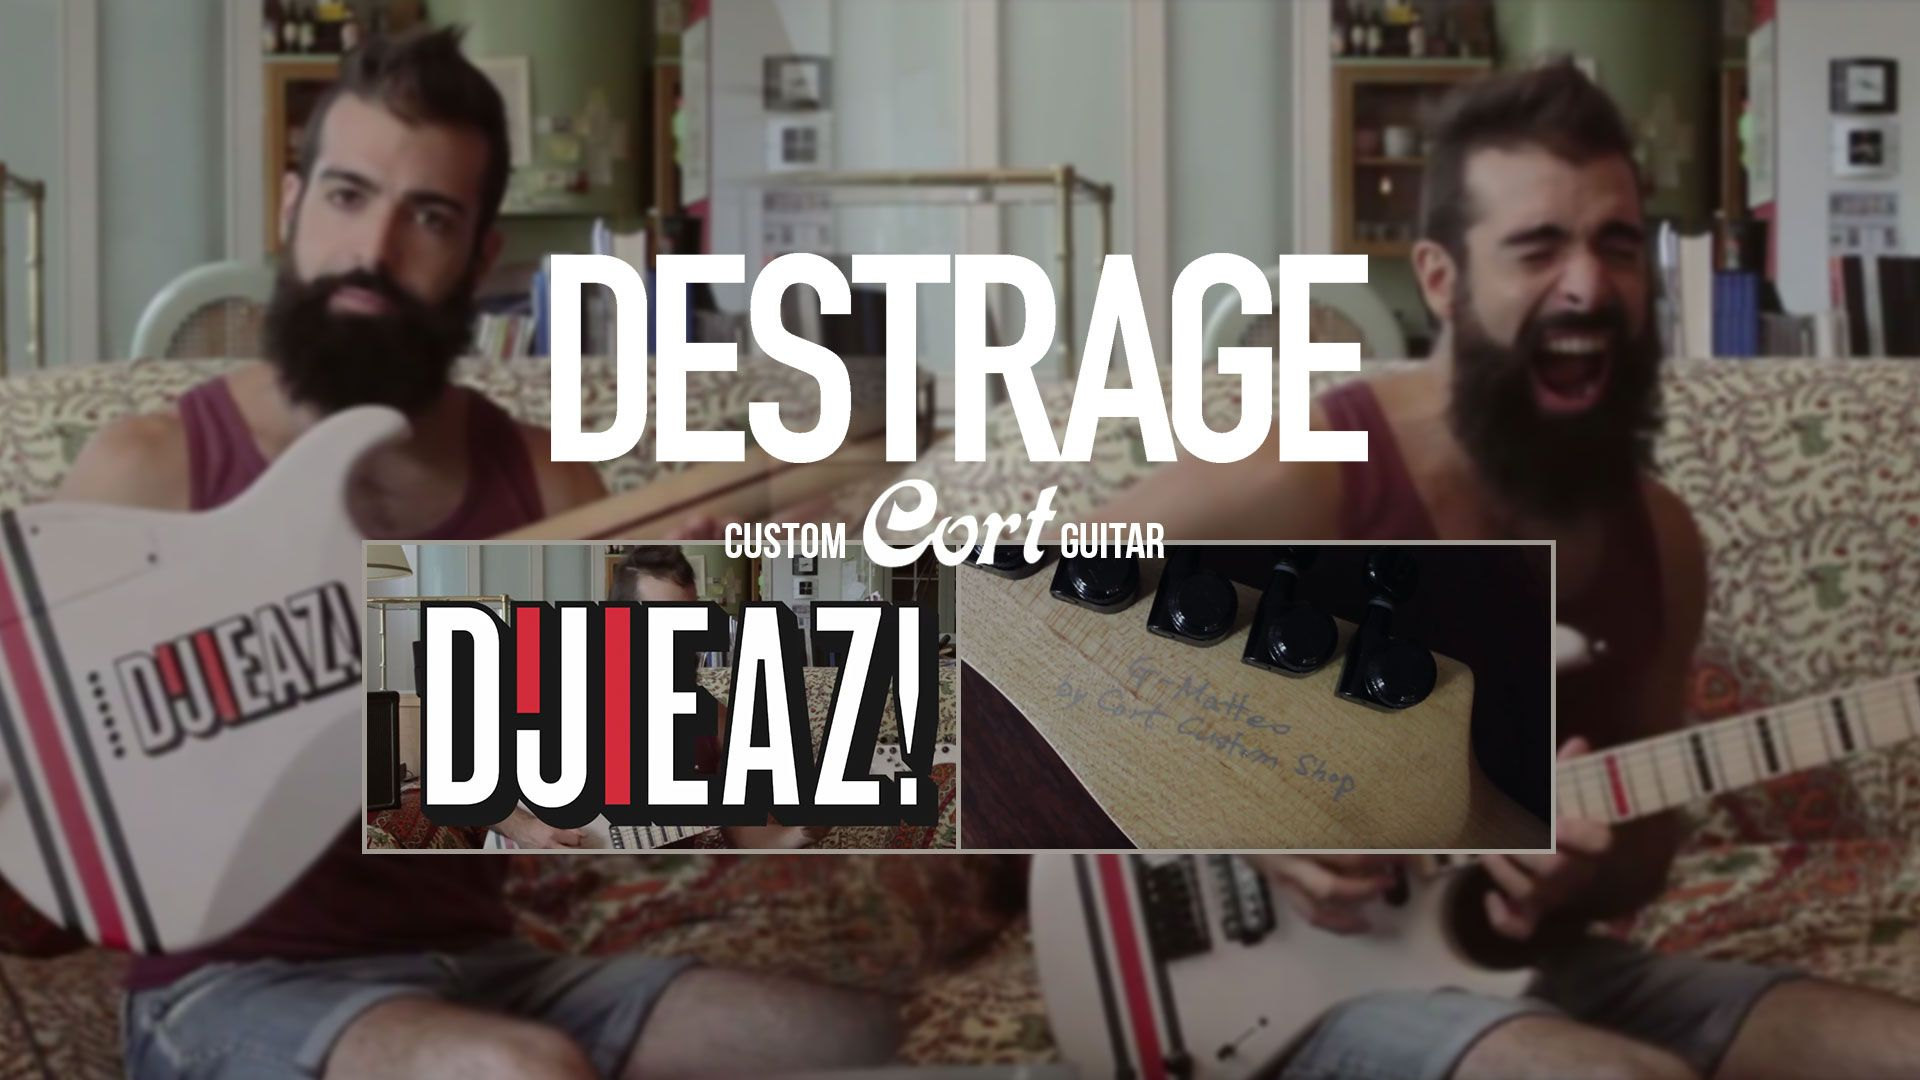 DESTRAGE release video to showcase new custom Cort guitar; begin work on new album Metal Blade Records  Milan, Italy's Destrage have just returned home from a successful performance at the Euroblast Festival in Koln, Germany (photos on facebook here ; https://www.facebook.com/Destrage/photos/a.10150313589120104.518505.111342640103/10156067862295104/?type=3 ) and are excited to get to work on their follow up to Are You Kidding Me?